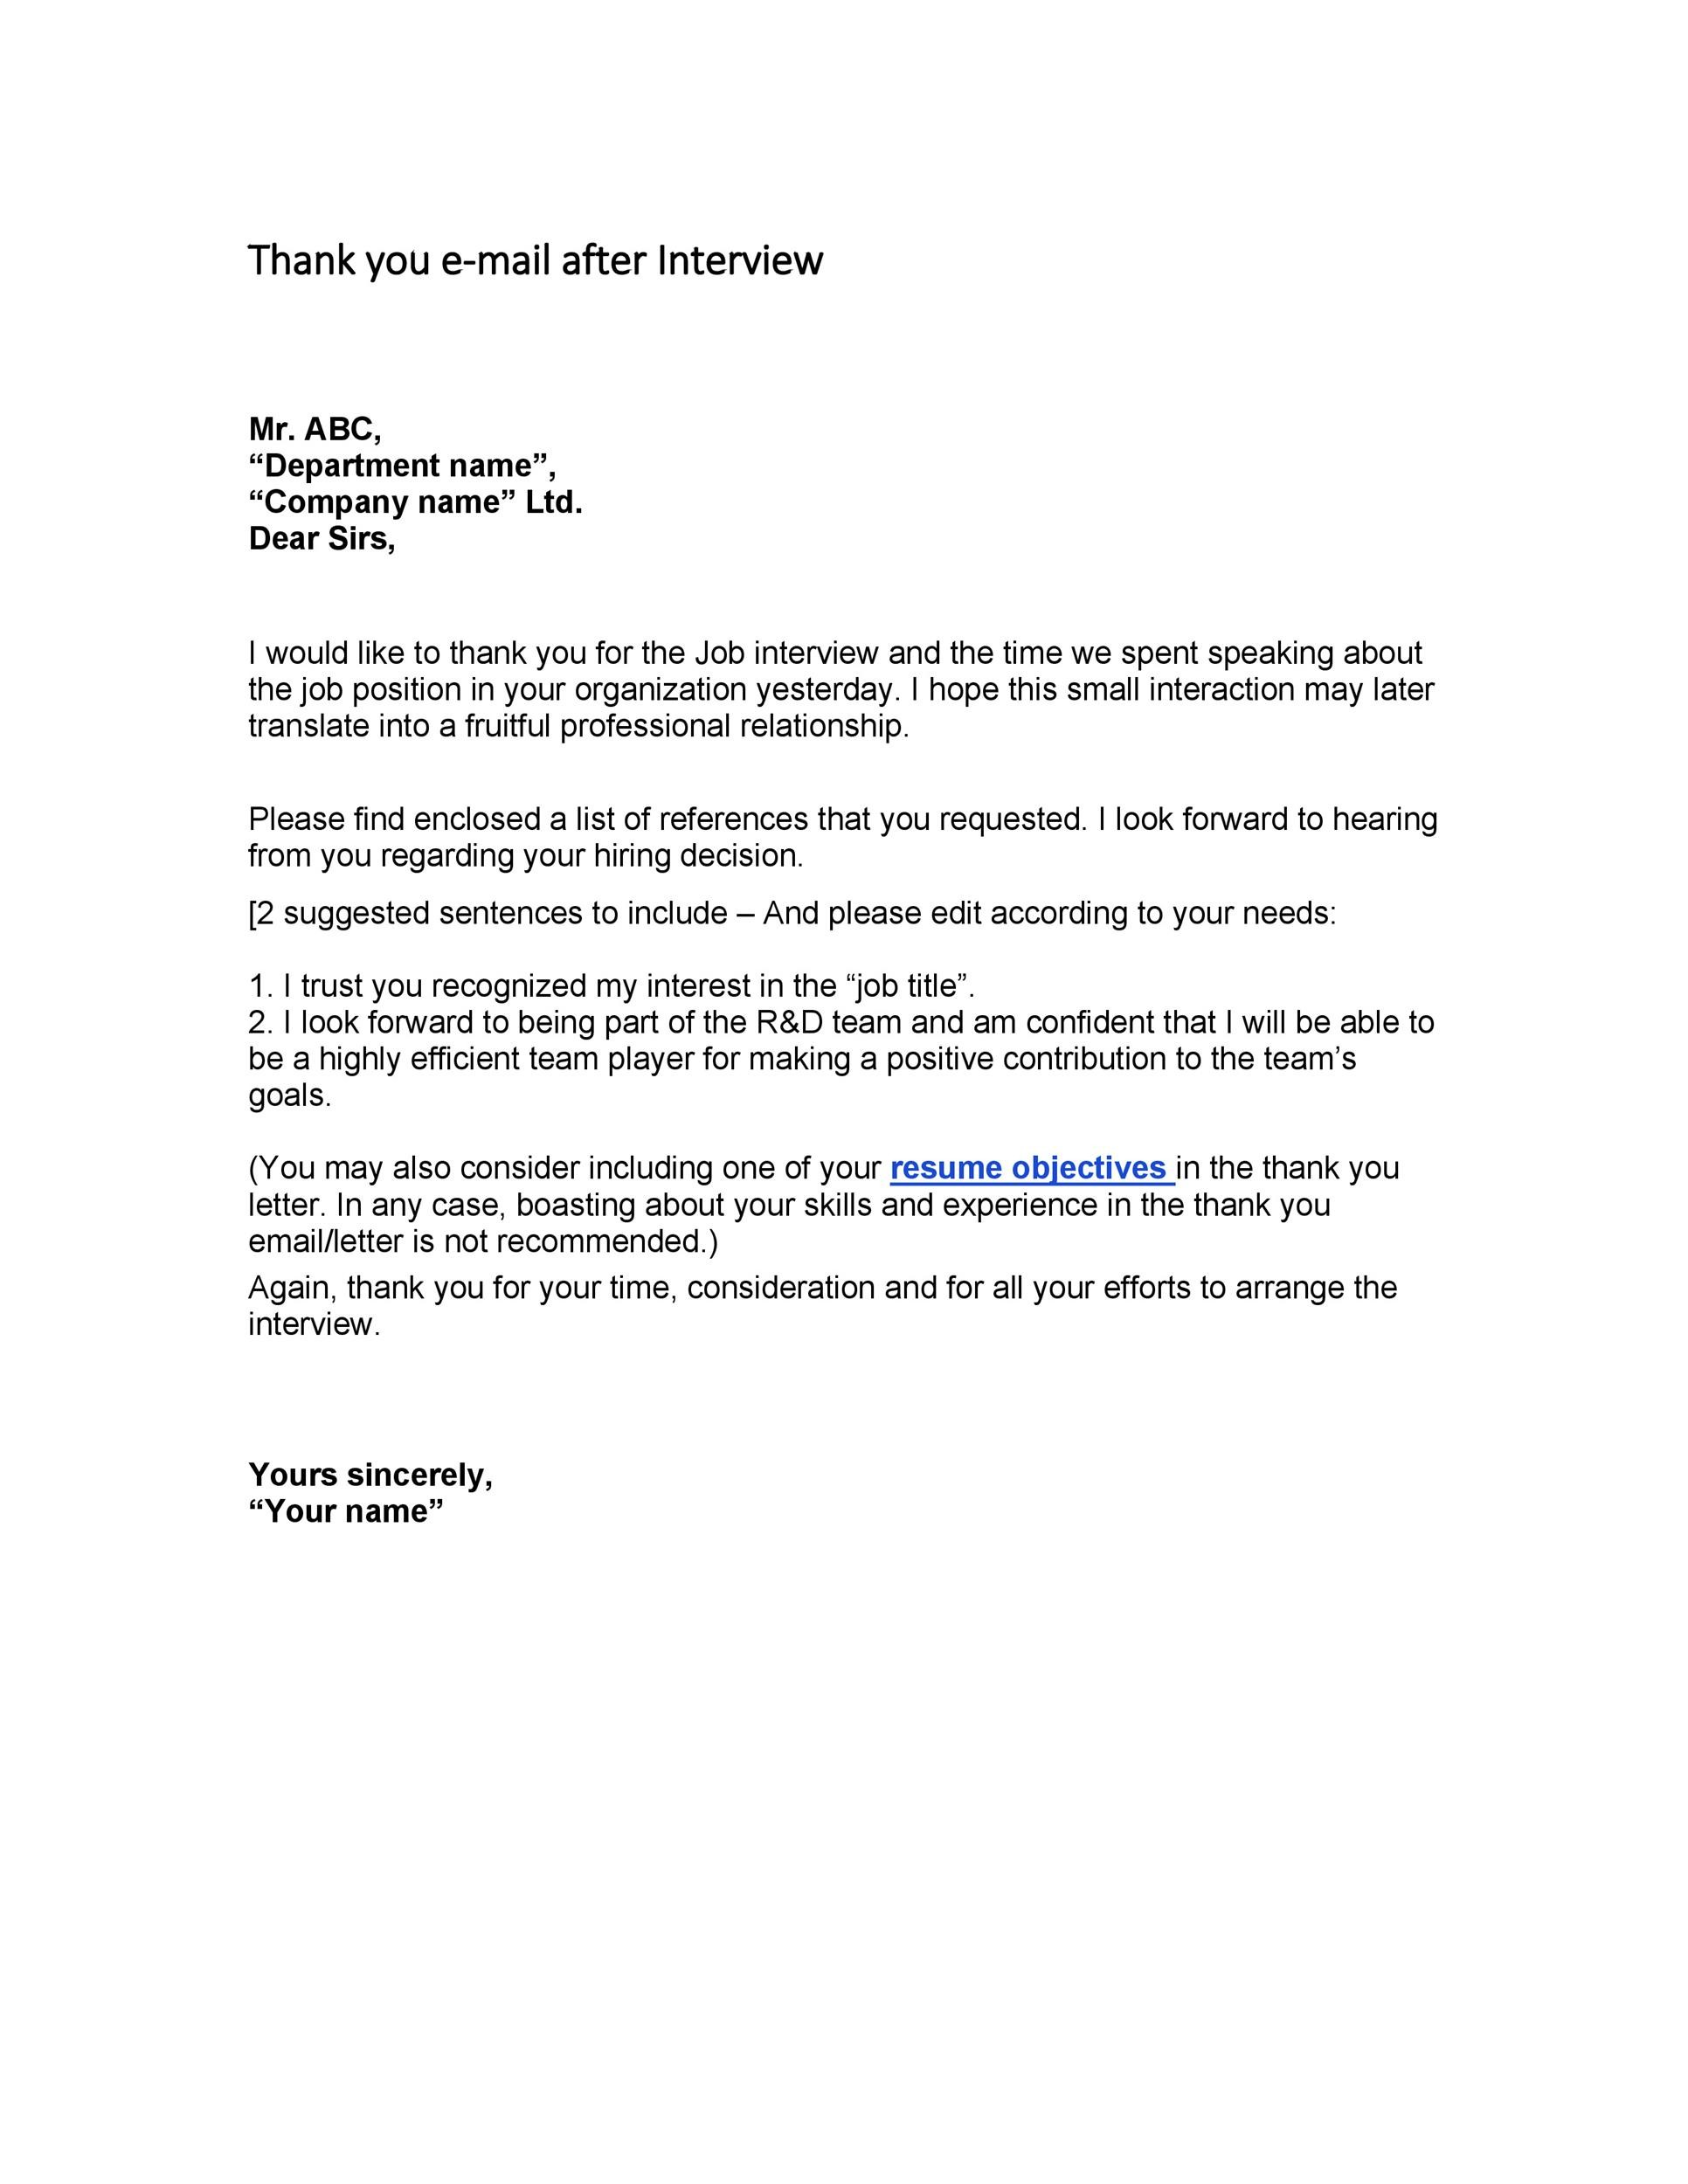 Thank You Letter After Interview Panel Cover Letter Examples – Thank You Email Template